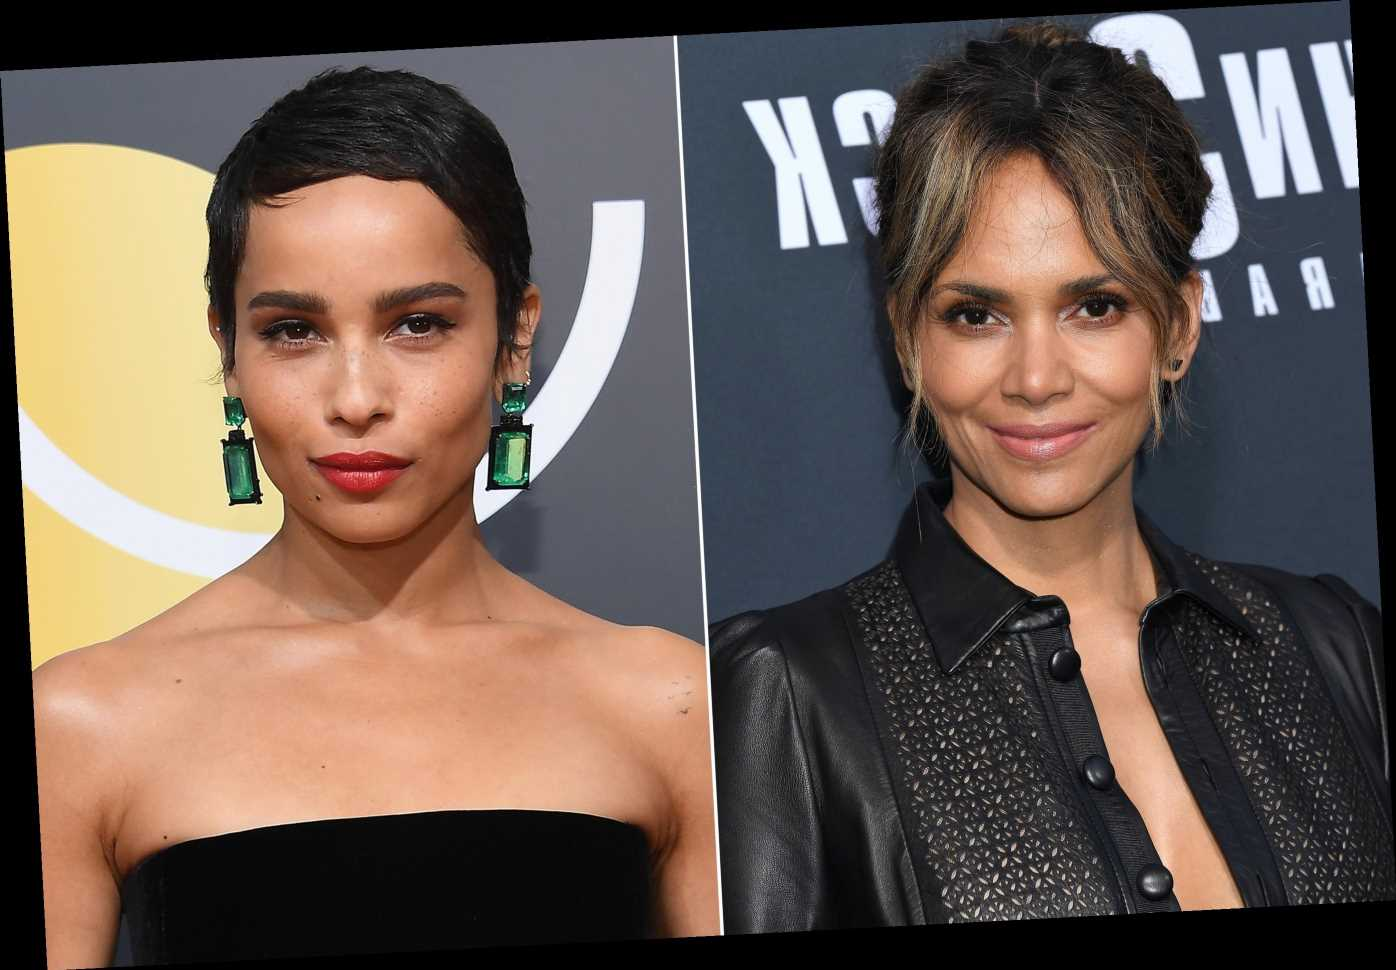 Halle Berry welcomes The Batman star Zoe Kravitz as Catwoman